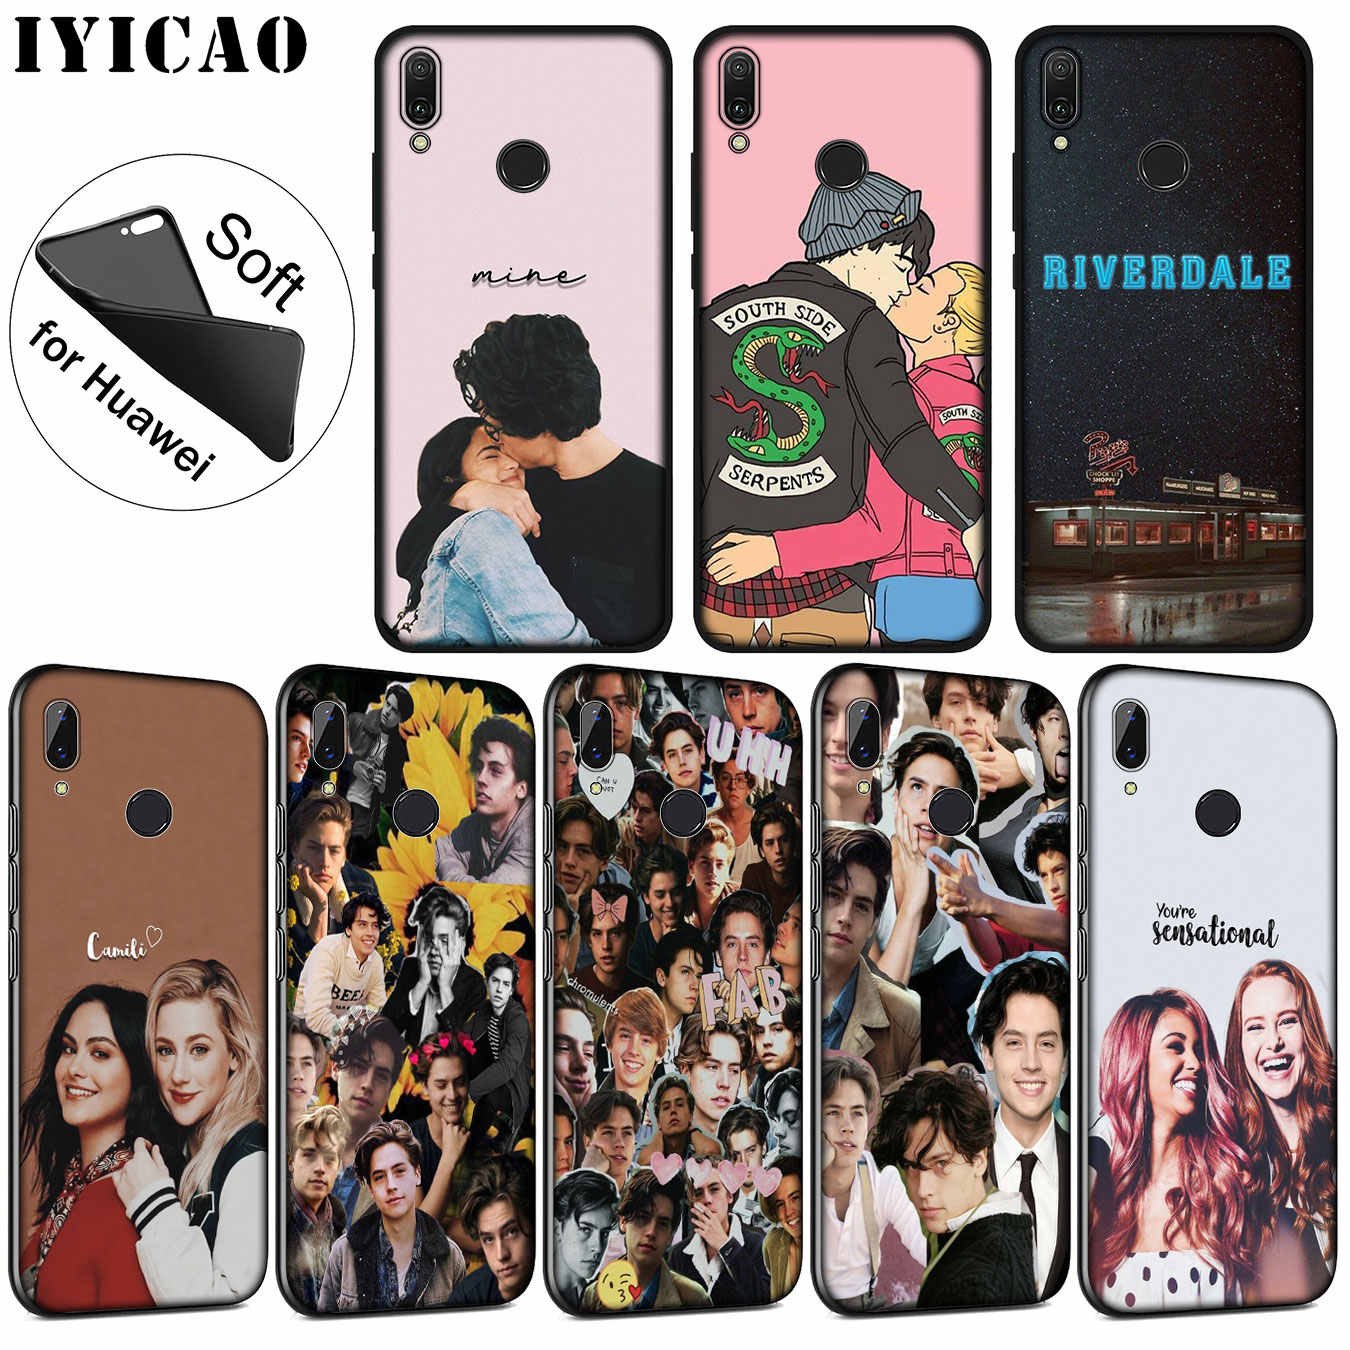 IYICAO riverdale choni Soft Silicone Phone Case for Huawei P30 P20 Pro P10 P9 P8 Lite Mini 2017 2016 2015 P smart Z 2019 Cover